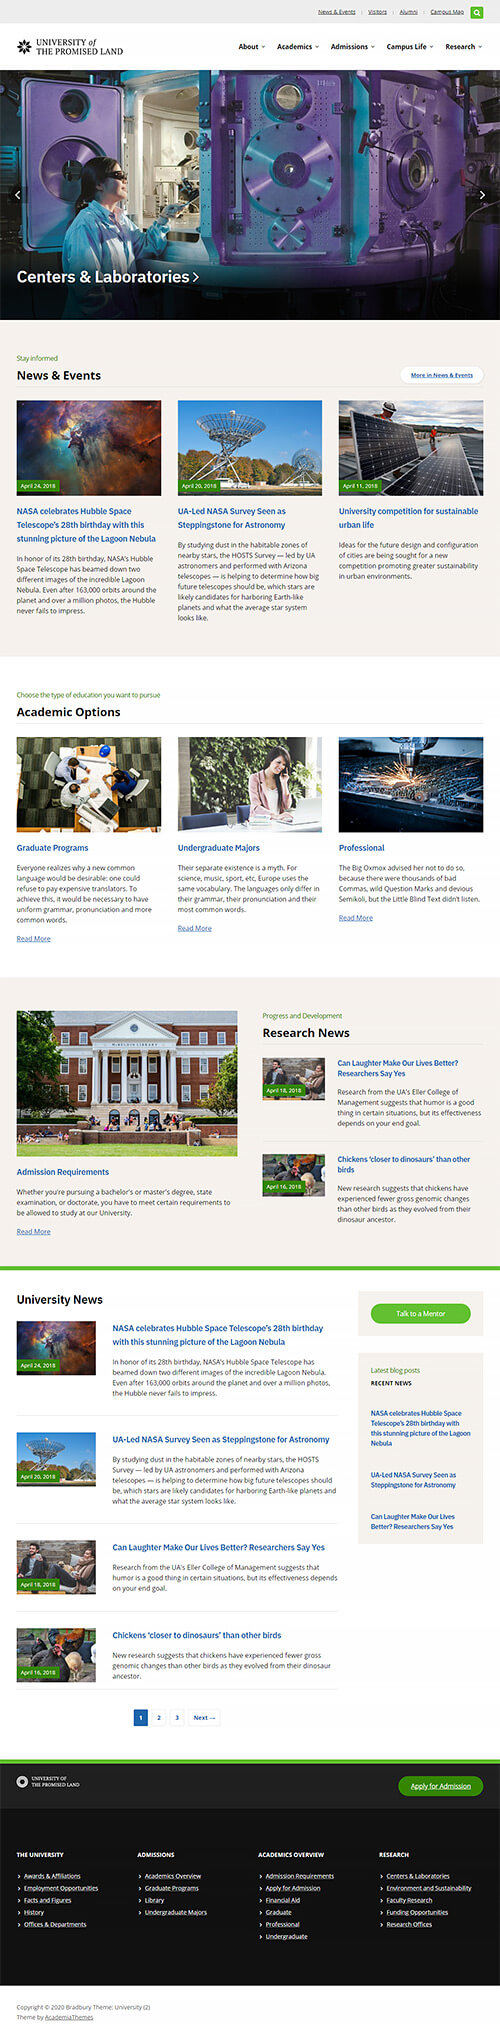 Alternative Homepage Overview: University